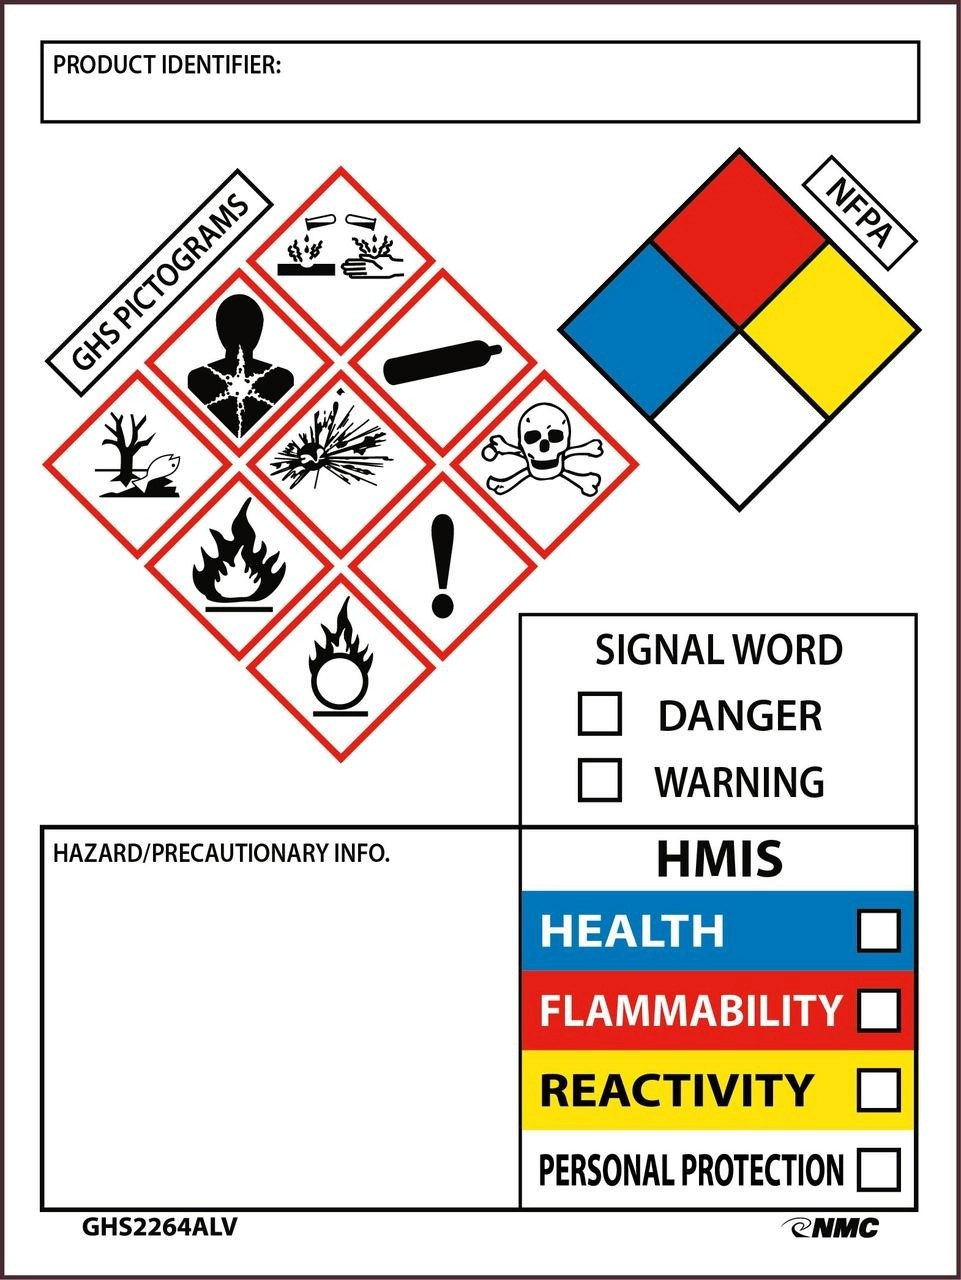 Osha Secondary Container Label Template : secondary, container, label, template, Secondary, Container, Label, Juleteagyd